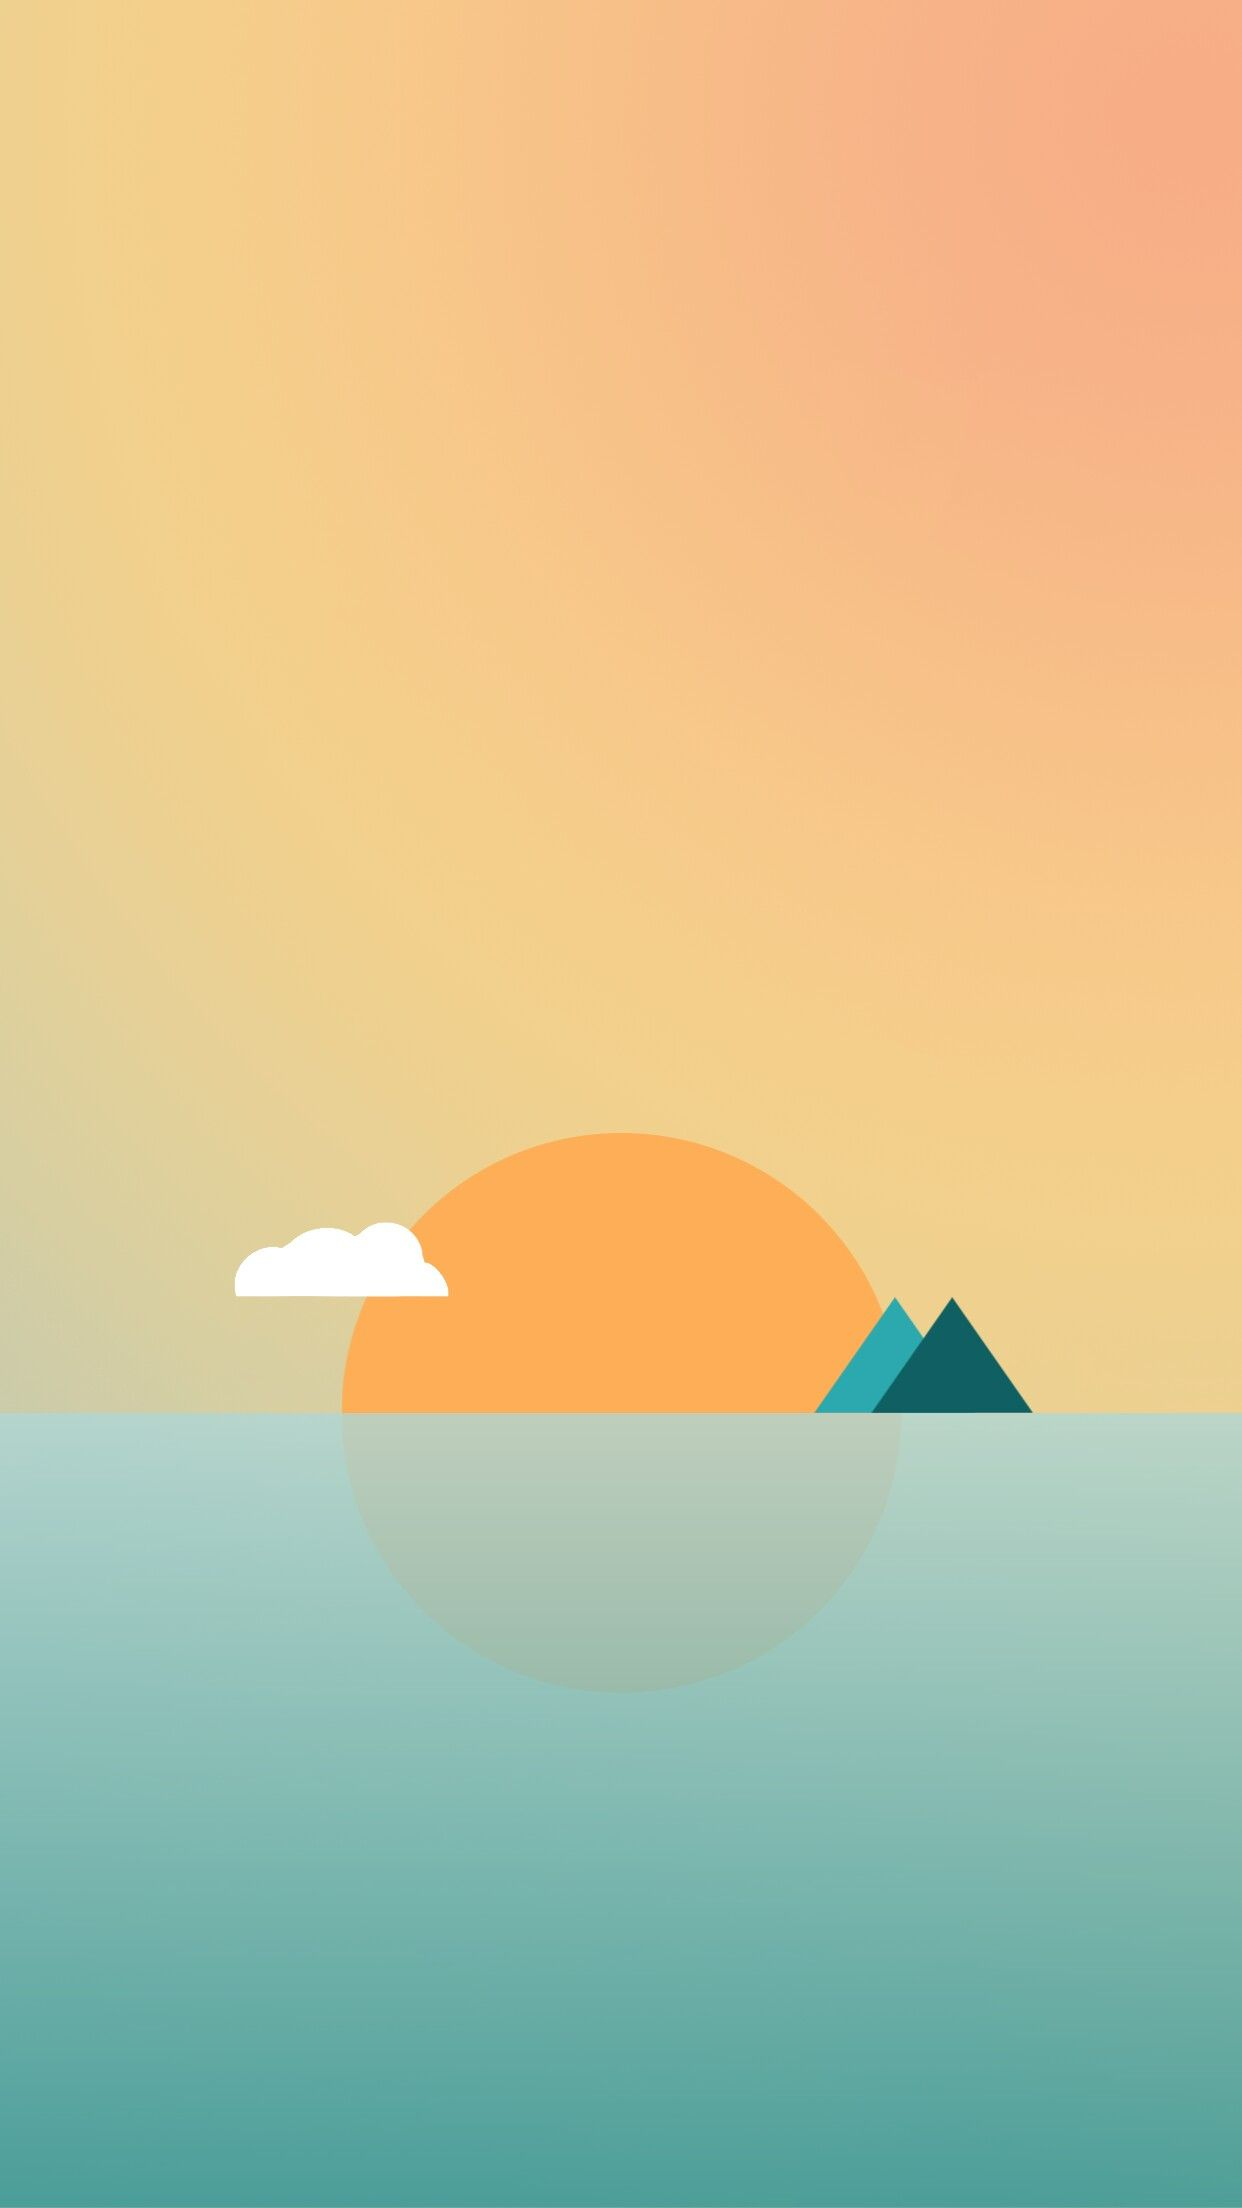 Sun Minimal Simple Iphone Wallpaper Simplistic Wallpaper Minimalist Wallpaper